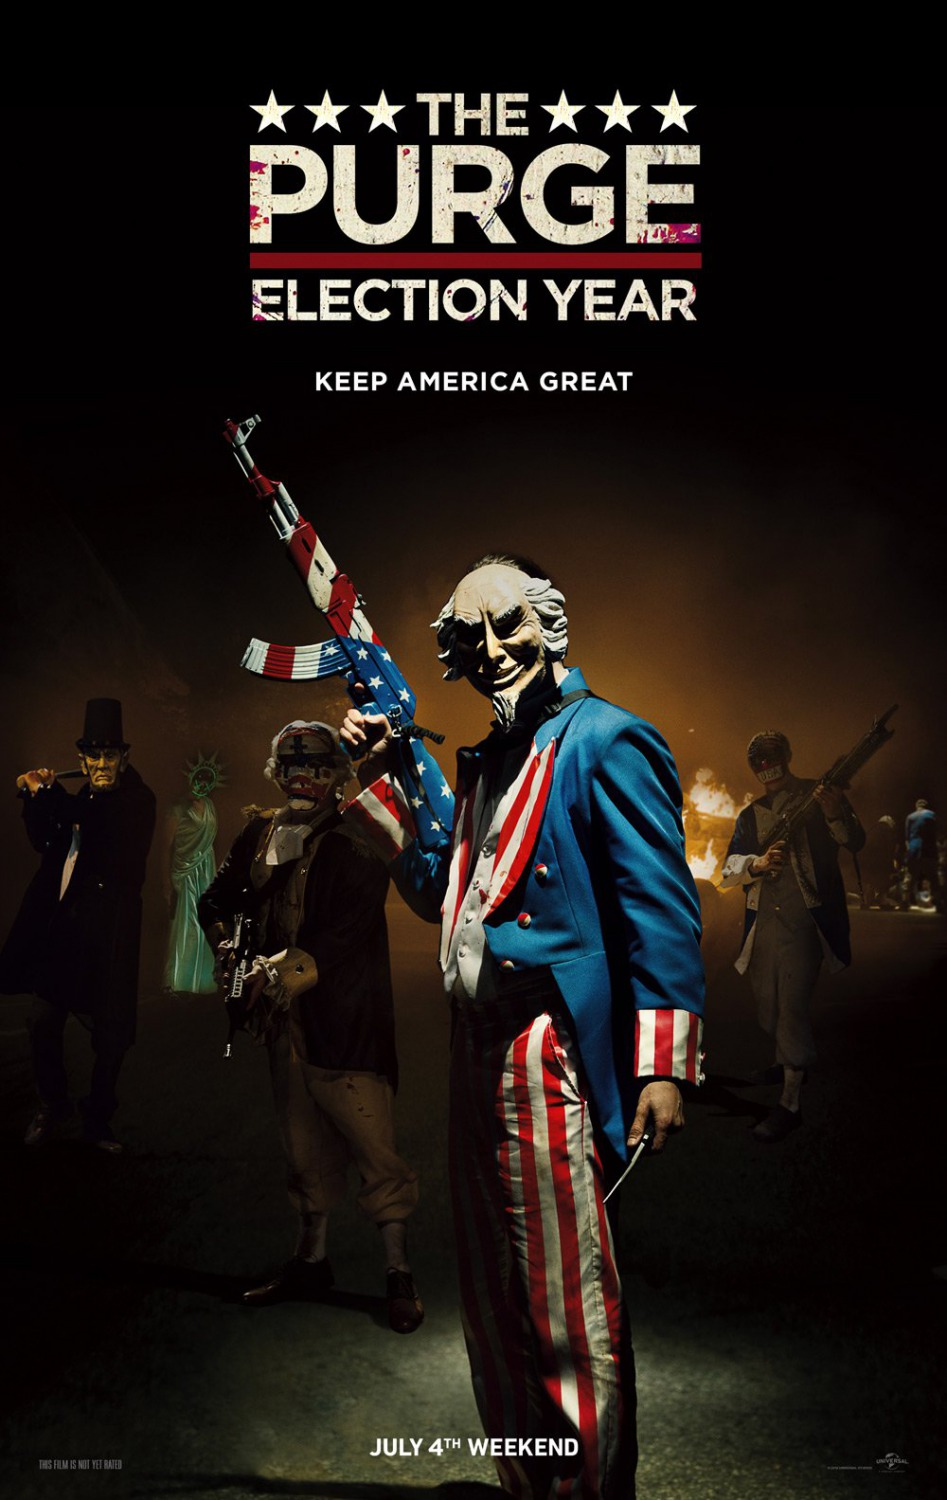 purge_election_year_poster_2